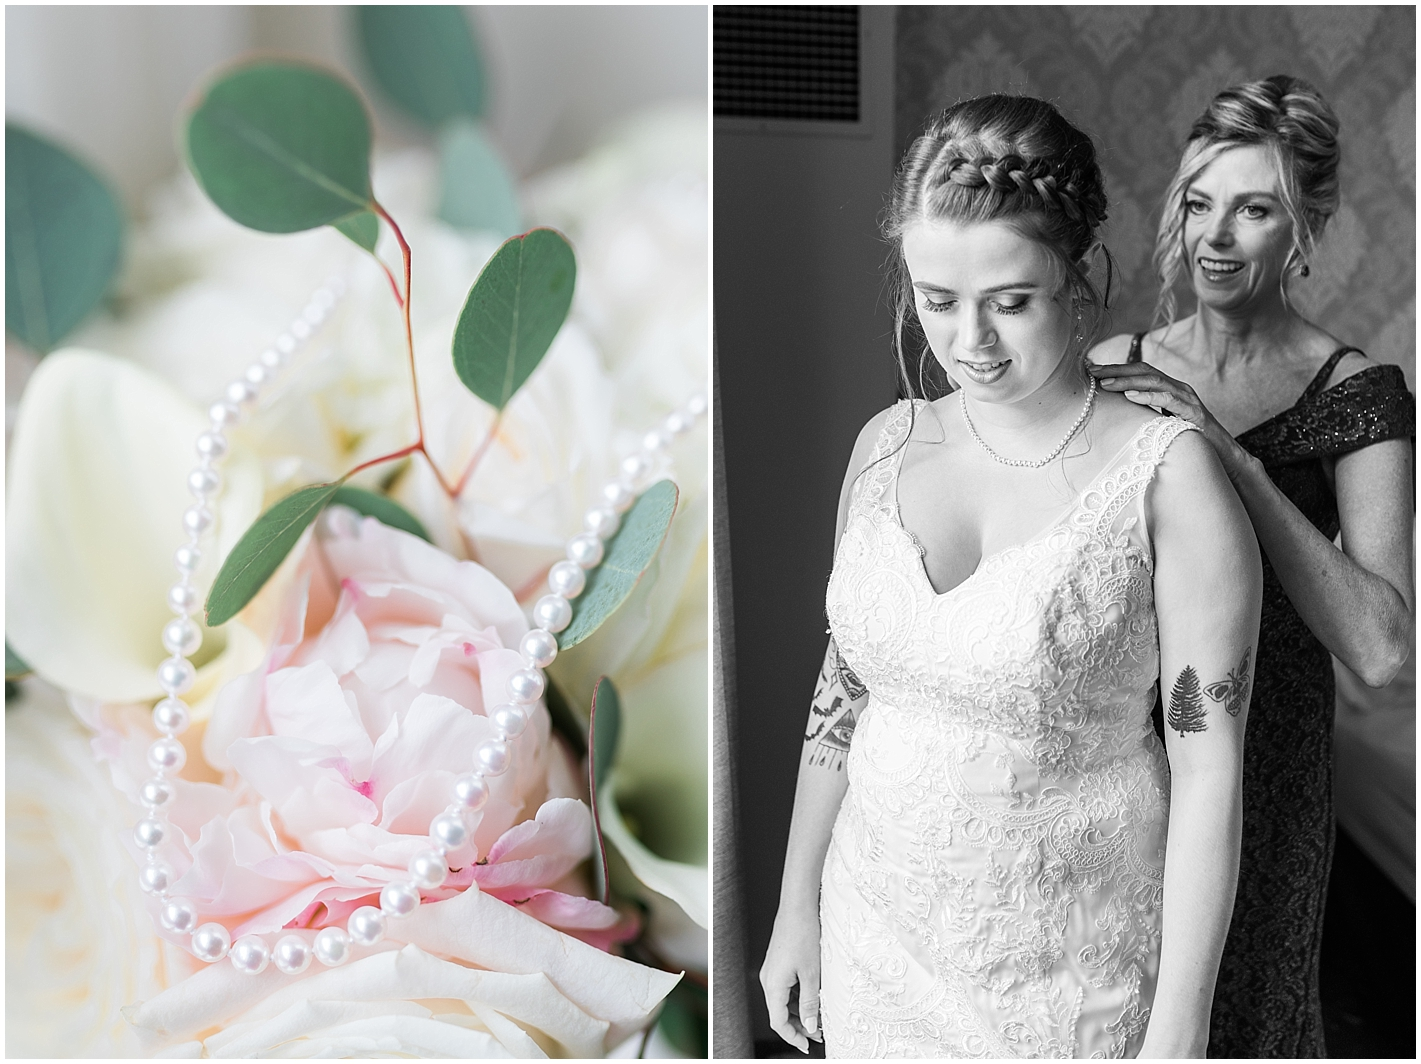 Pearl Wedding Necklace Photo By Alyssa Parker Photography